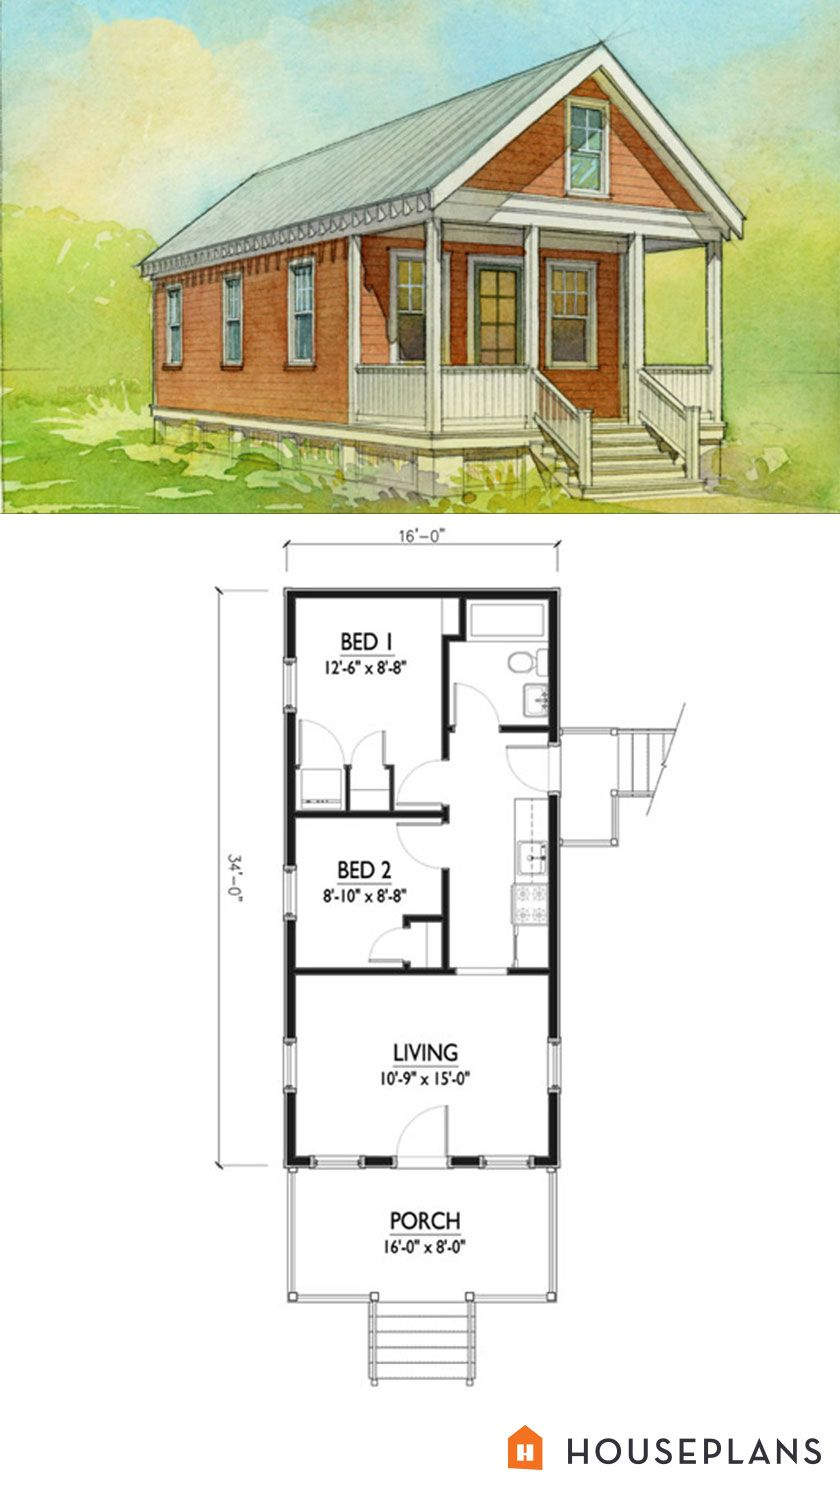 Small katrina cottage house plan 500sft 2br 1 bath by for Small house design